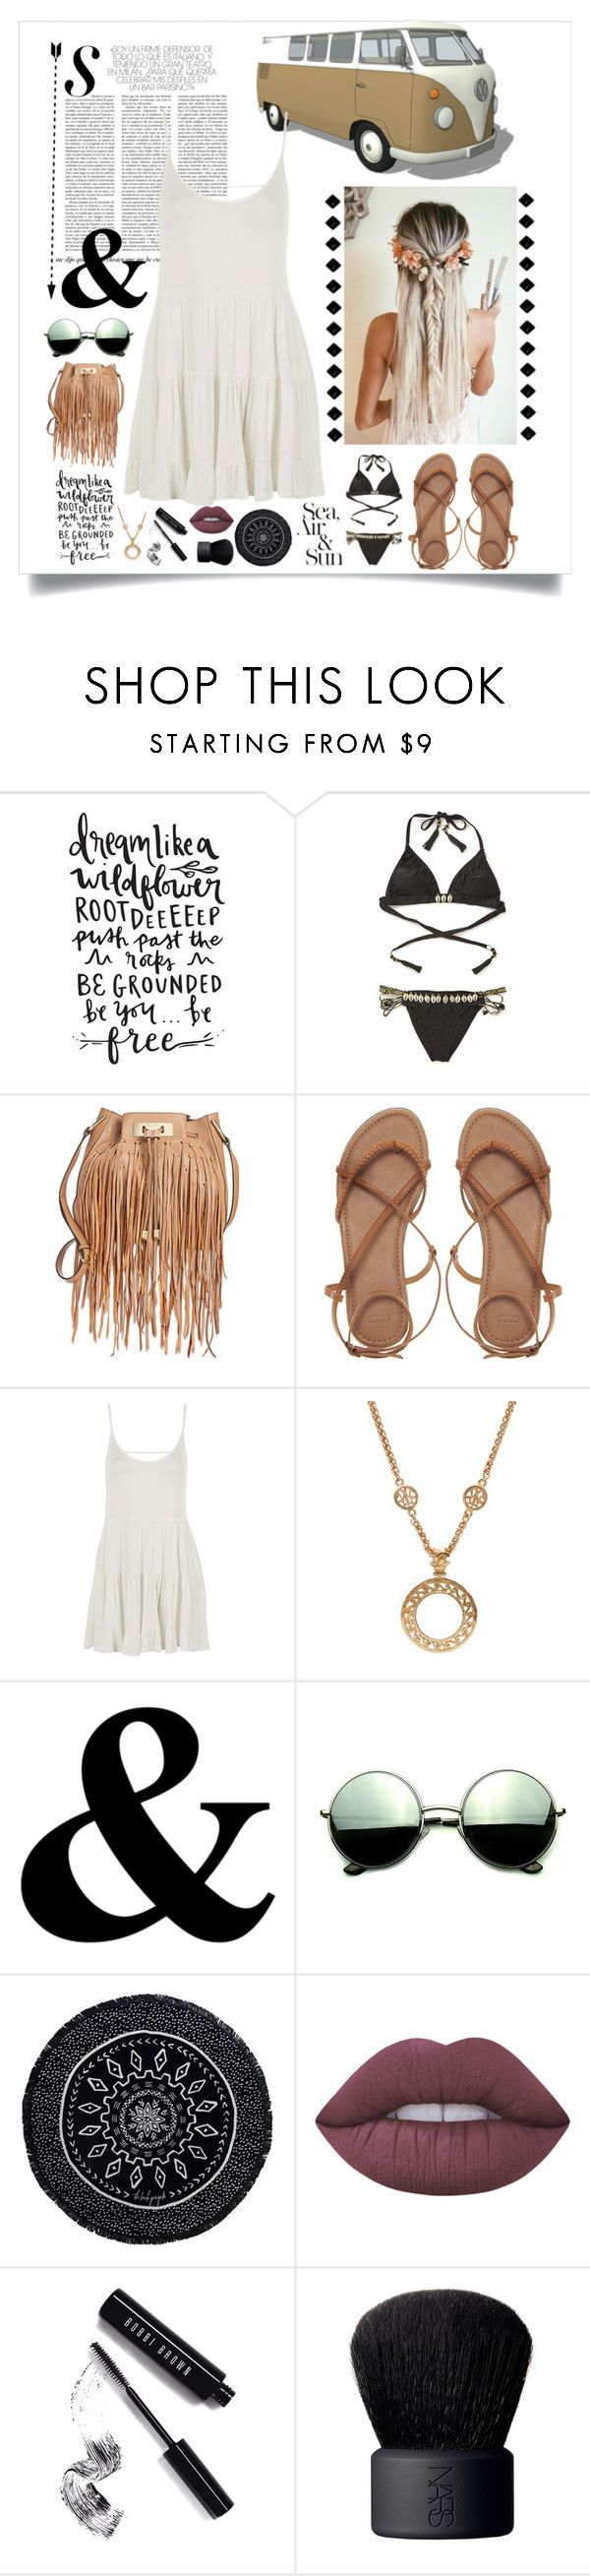 """Modern Hippie"" by rhiannonpsayer on Polyvore featuring Amenapih, Calvin Klein, ASOS, Topshop, Chanel, Revo, The Beach People, Lime Crime, Bobbi Brown Cosmetics and NARS Cosmetics"